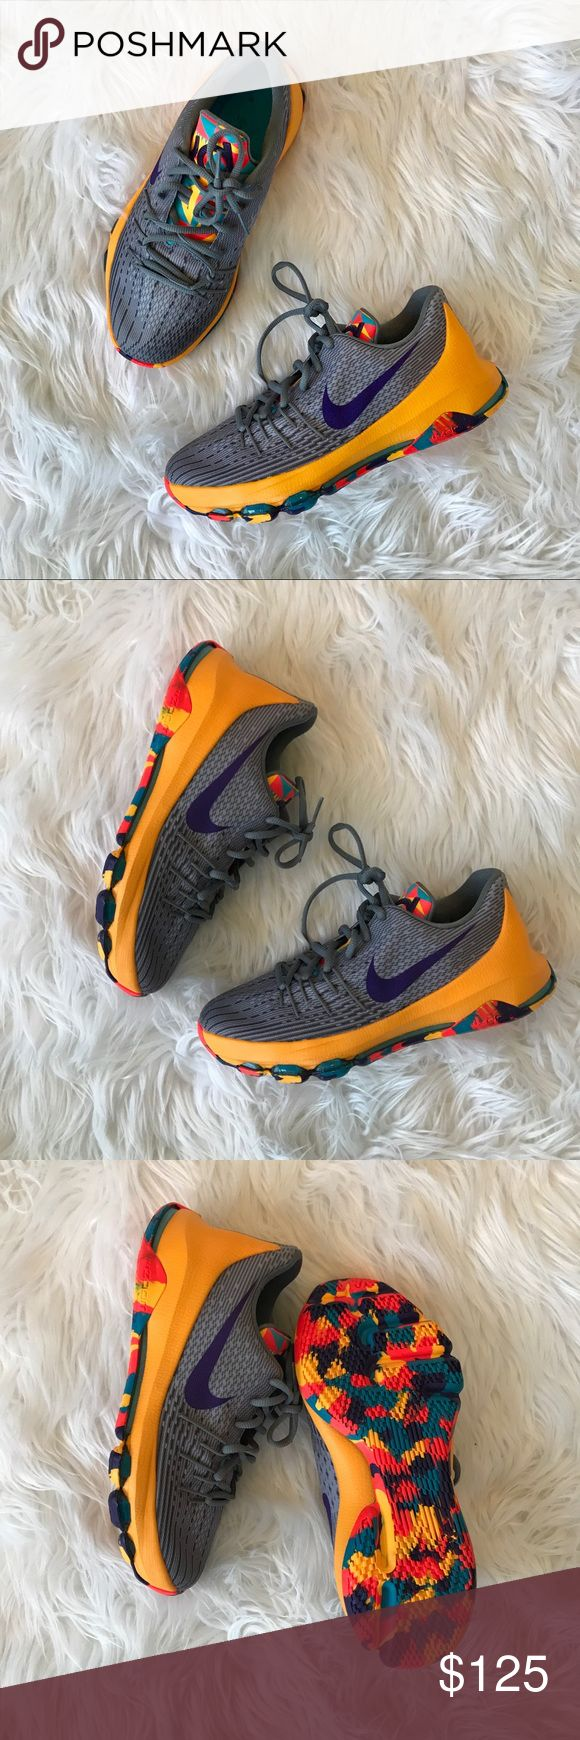 • Nike • Kevin Durant Zoom Basketball Shoes 5.5 - Nike - Kevin Durant  - Zoom Sneakers - Running Shoes - Basketball Shoes - Orange, Gray, Purple, Blue - New without Box - Size 5.5 Nike Shoes Sneakers